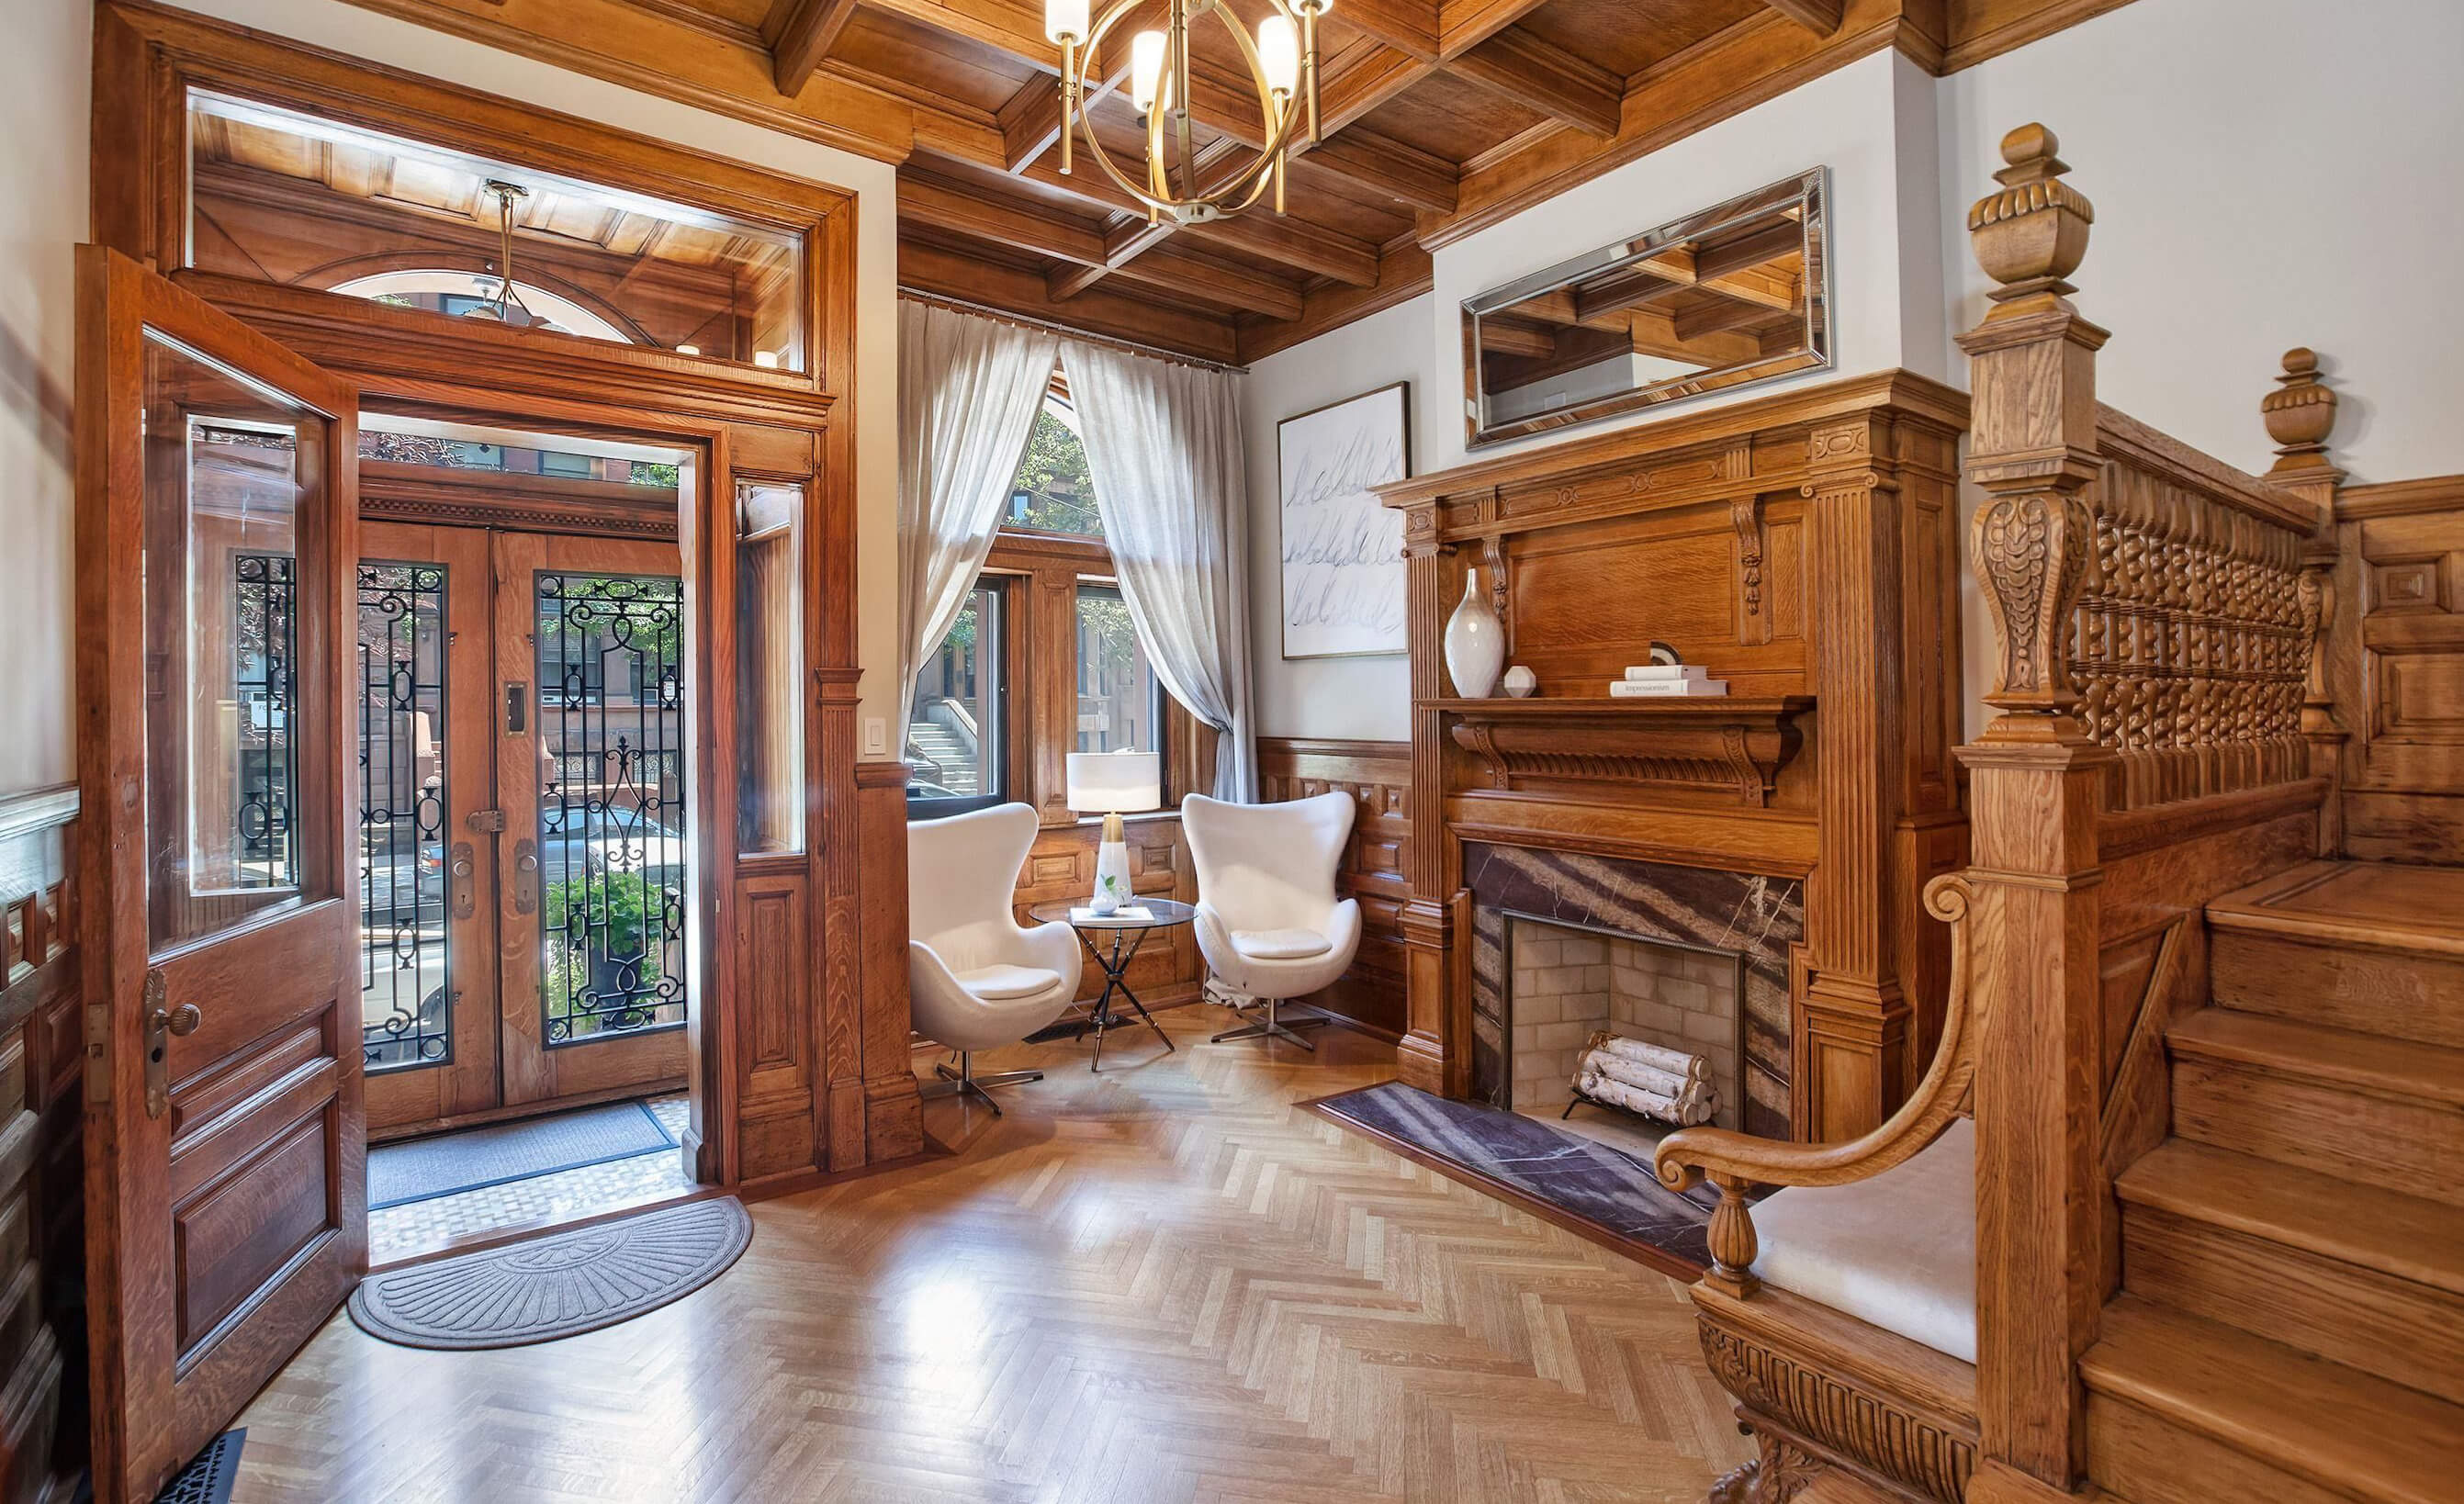 Interior Design Ideas Should Original Woodwork Be Painted